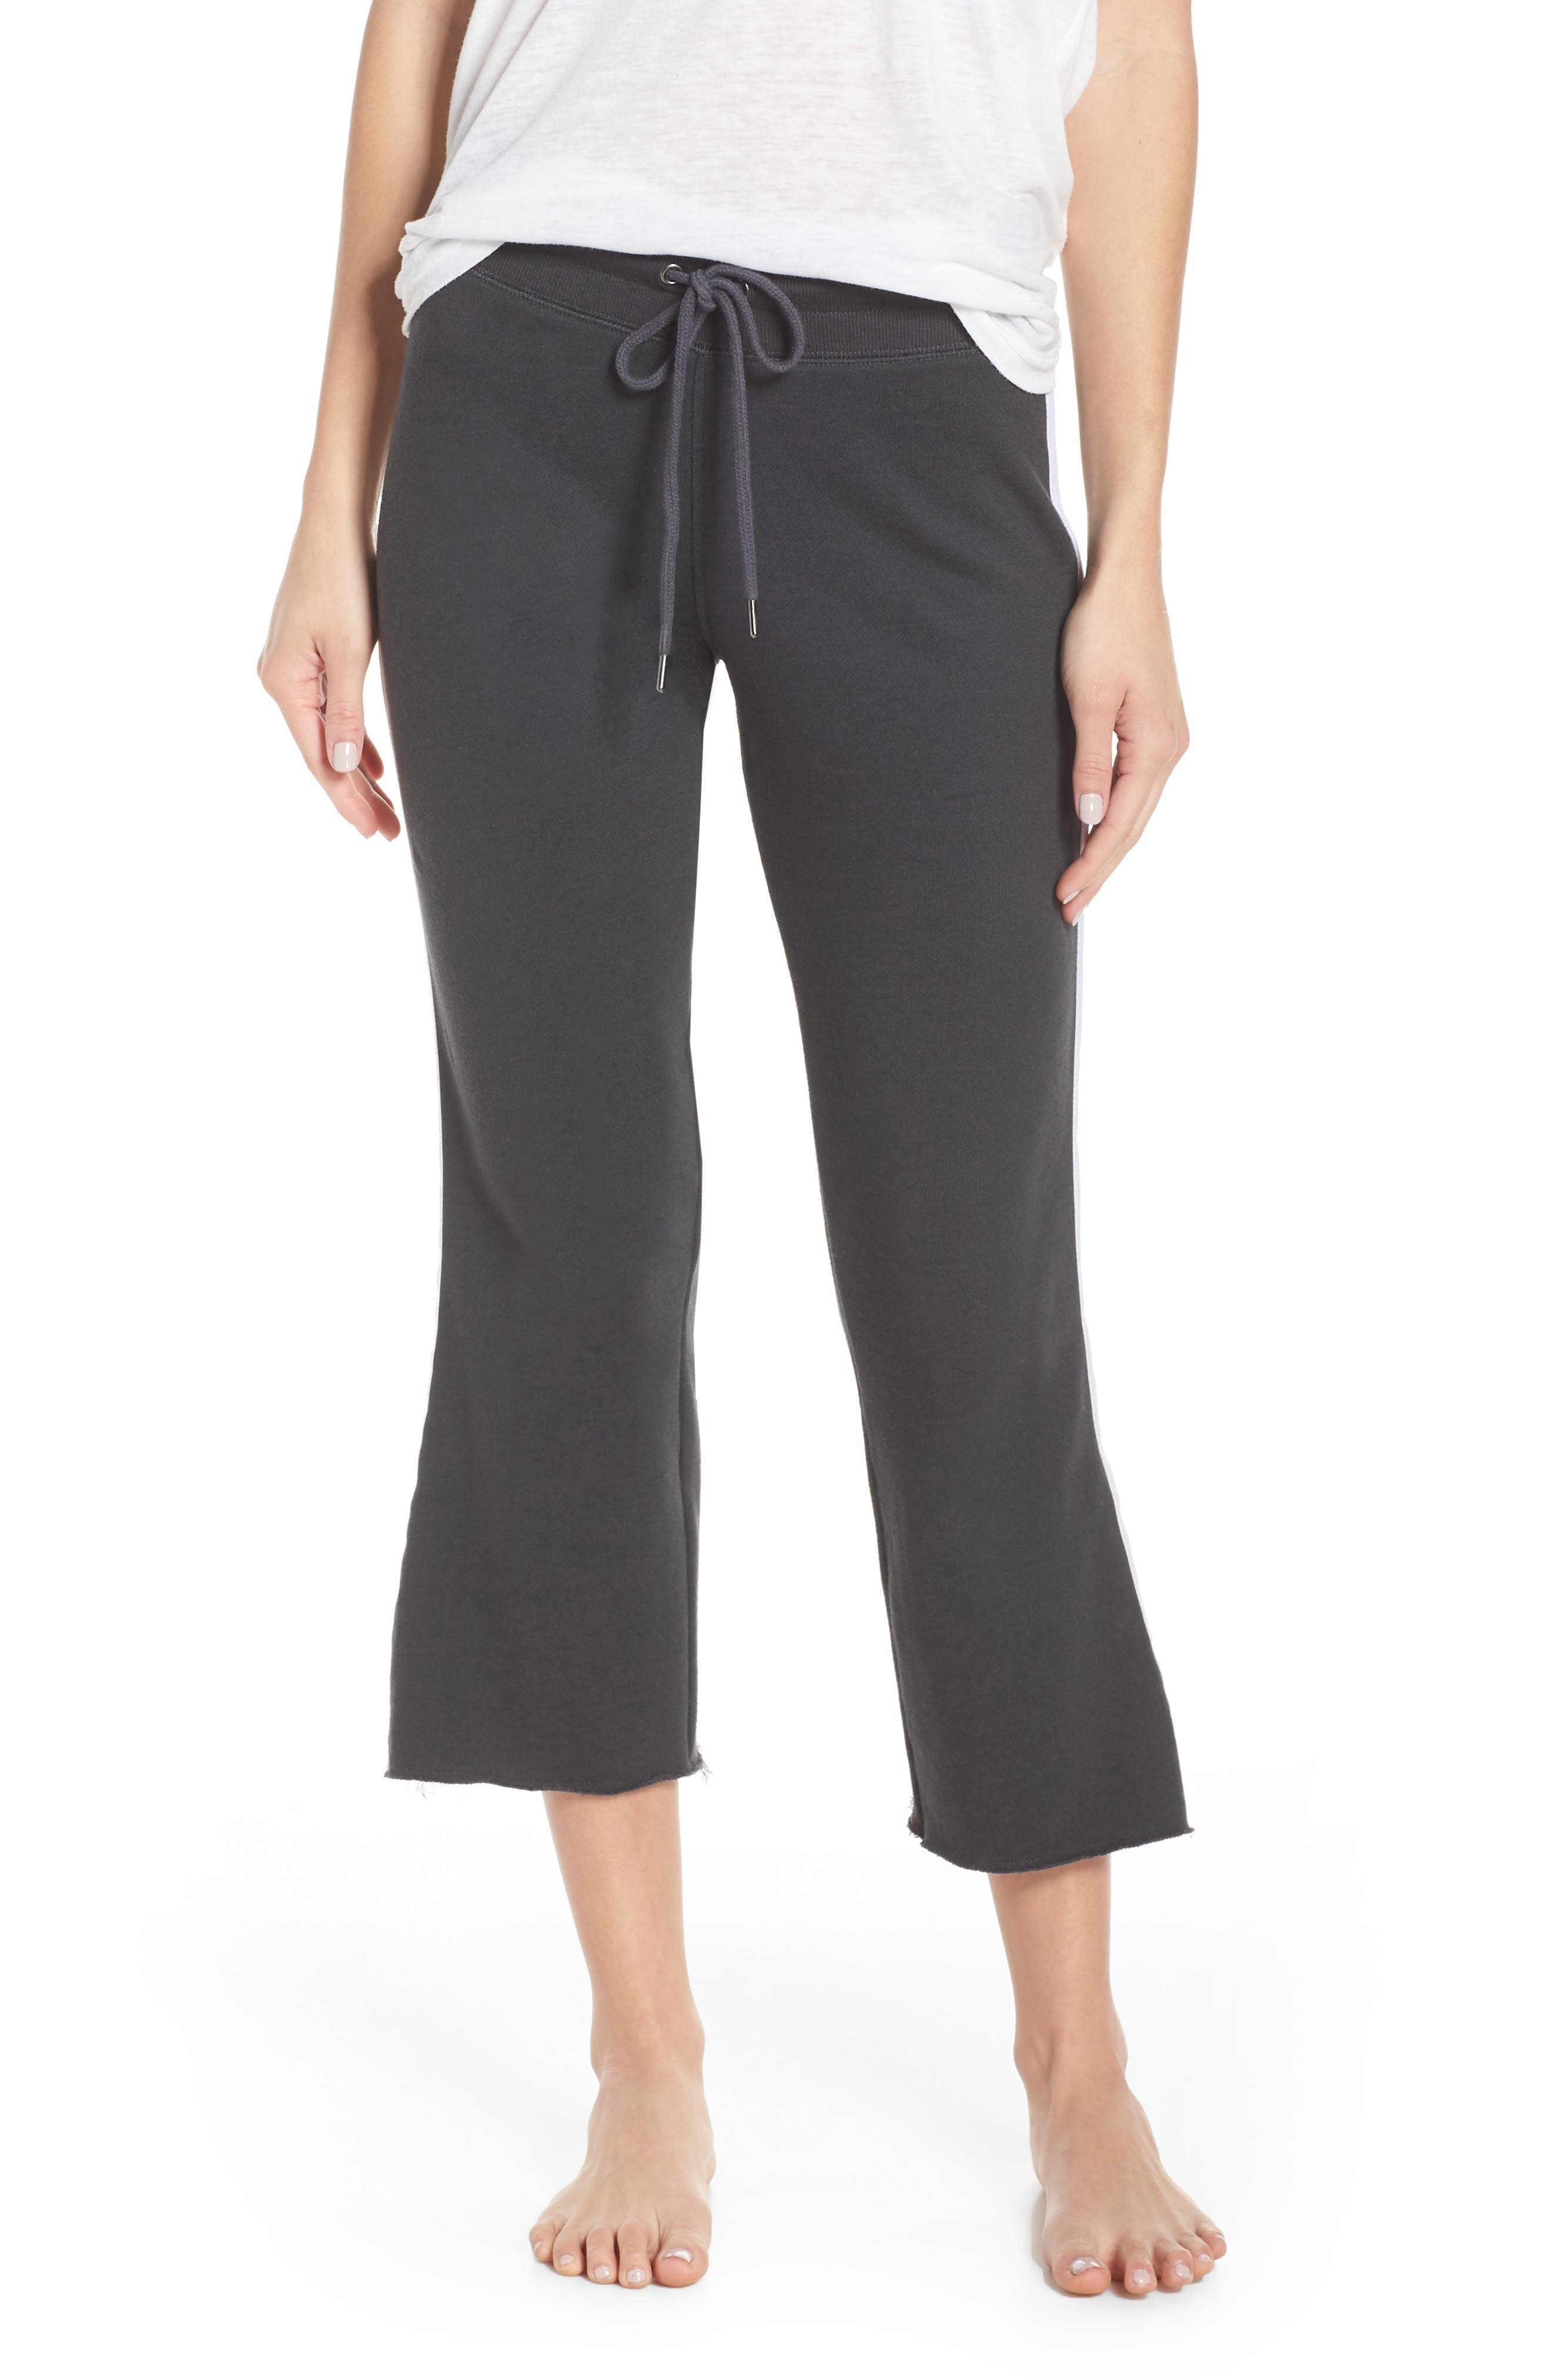 David Lerner Crop Flare Lounge Pants, Black